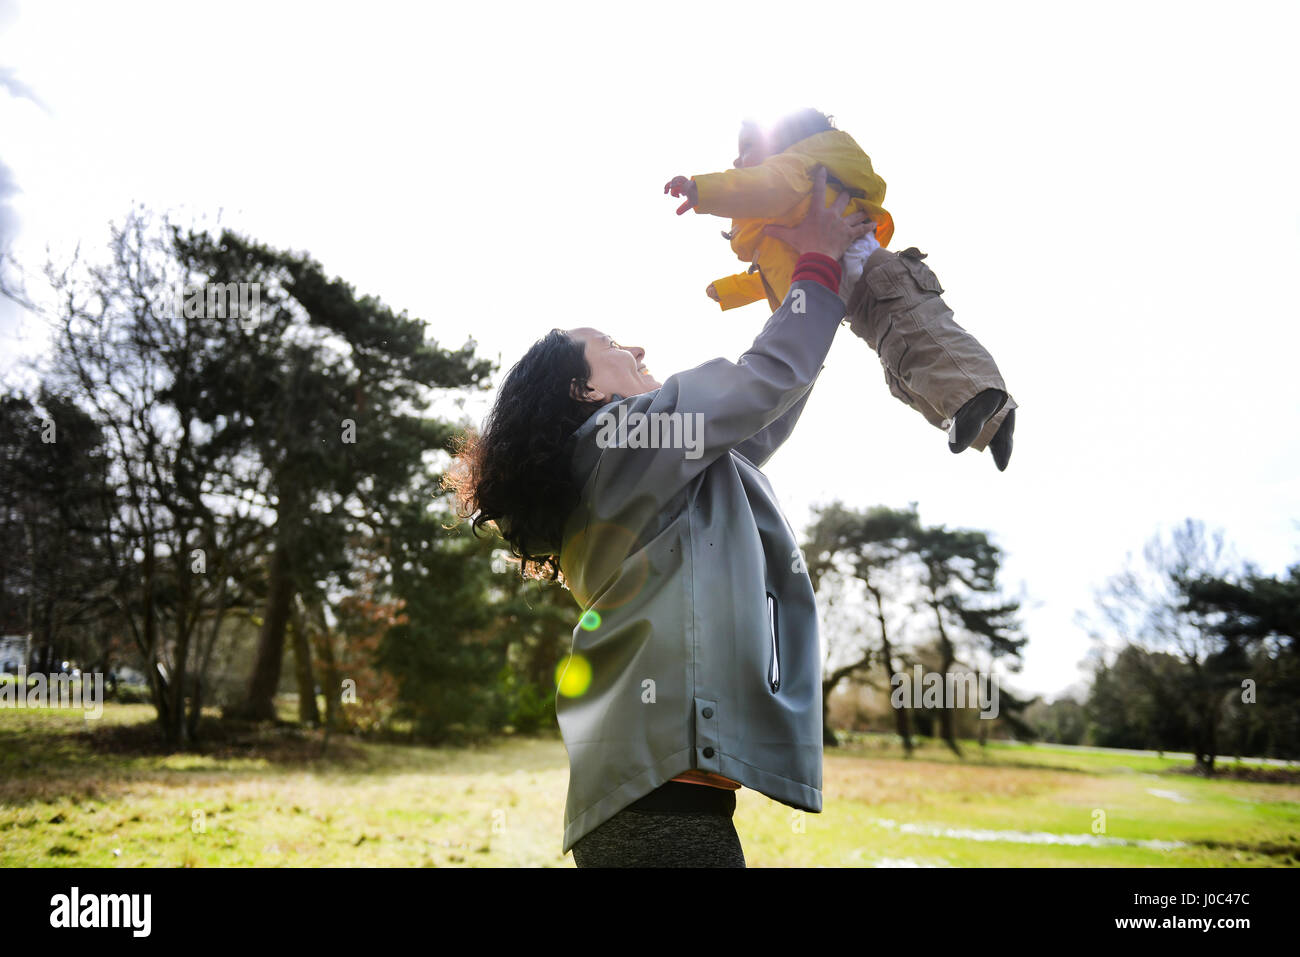 Mature woman holding up and playing with baby son in park - Stock Image